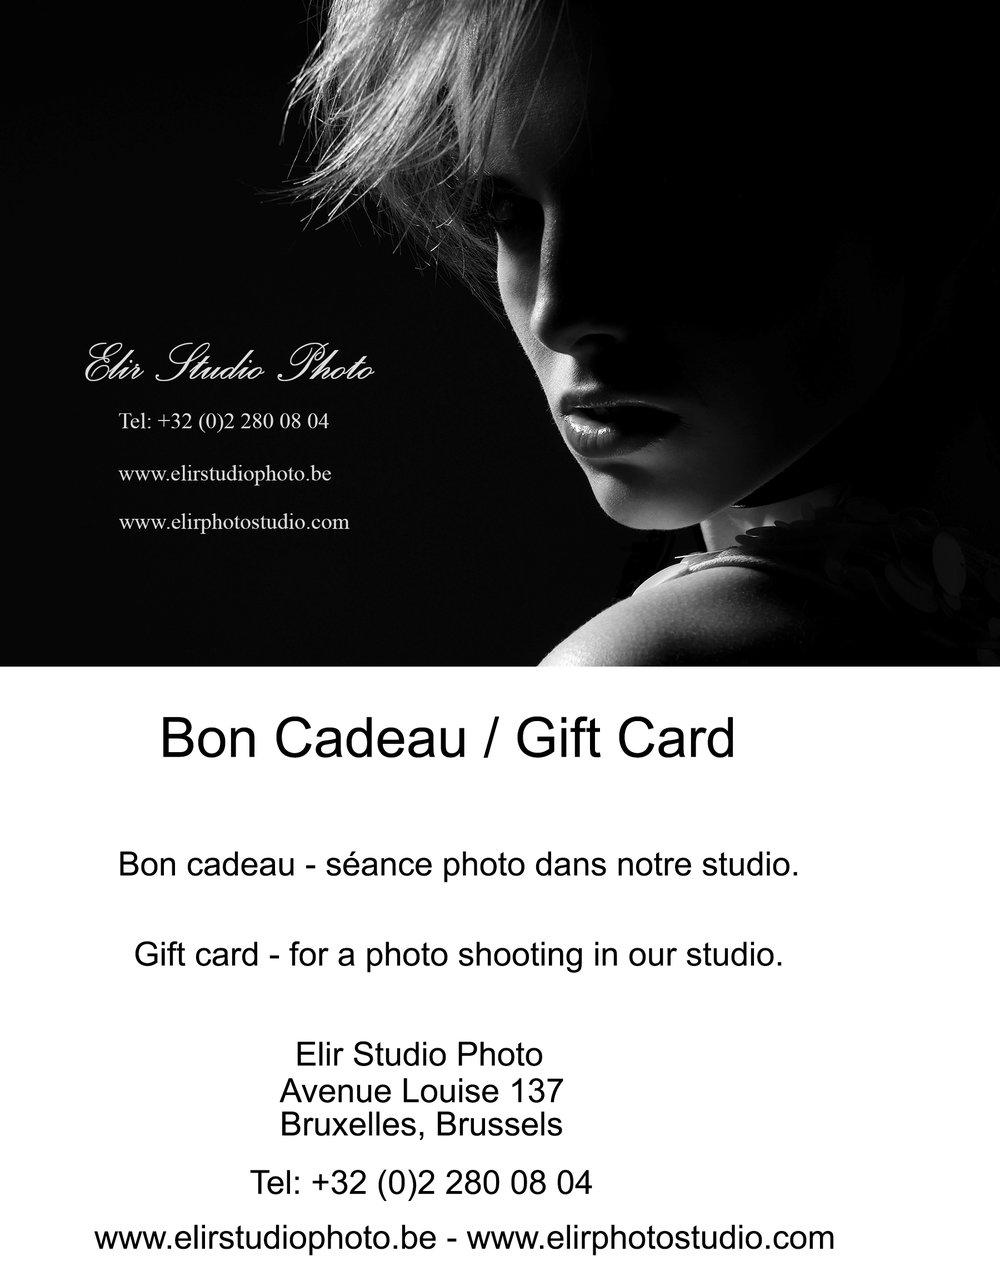 Bon cadeau_Gift card_Elir Studio Photo_Bruxelles_Brussels.jpg